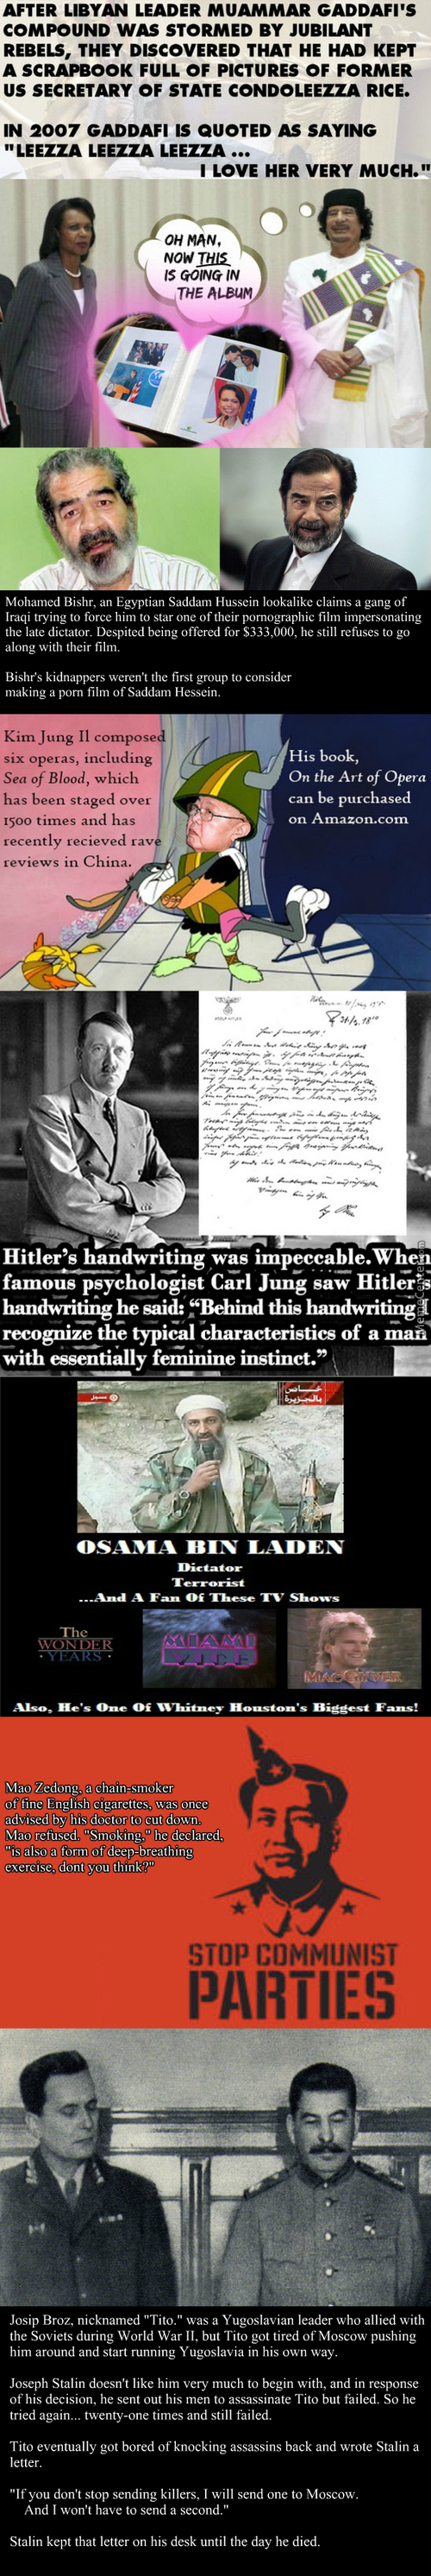 Amusing Facts About Dictators